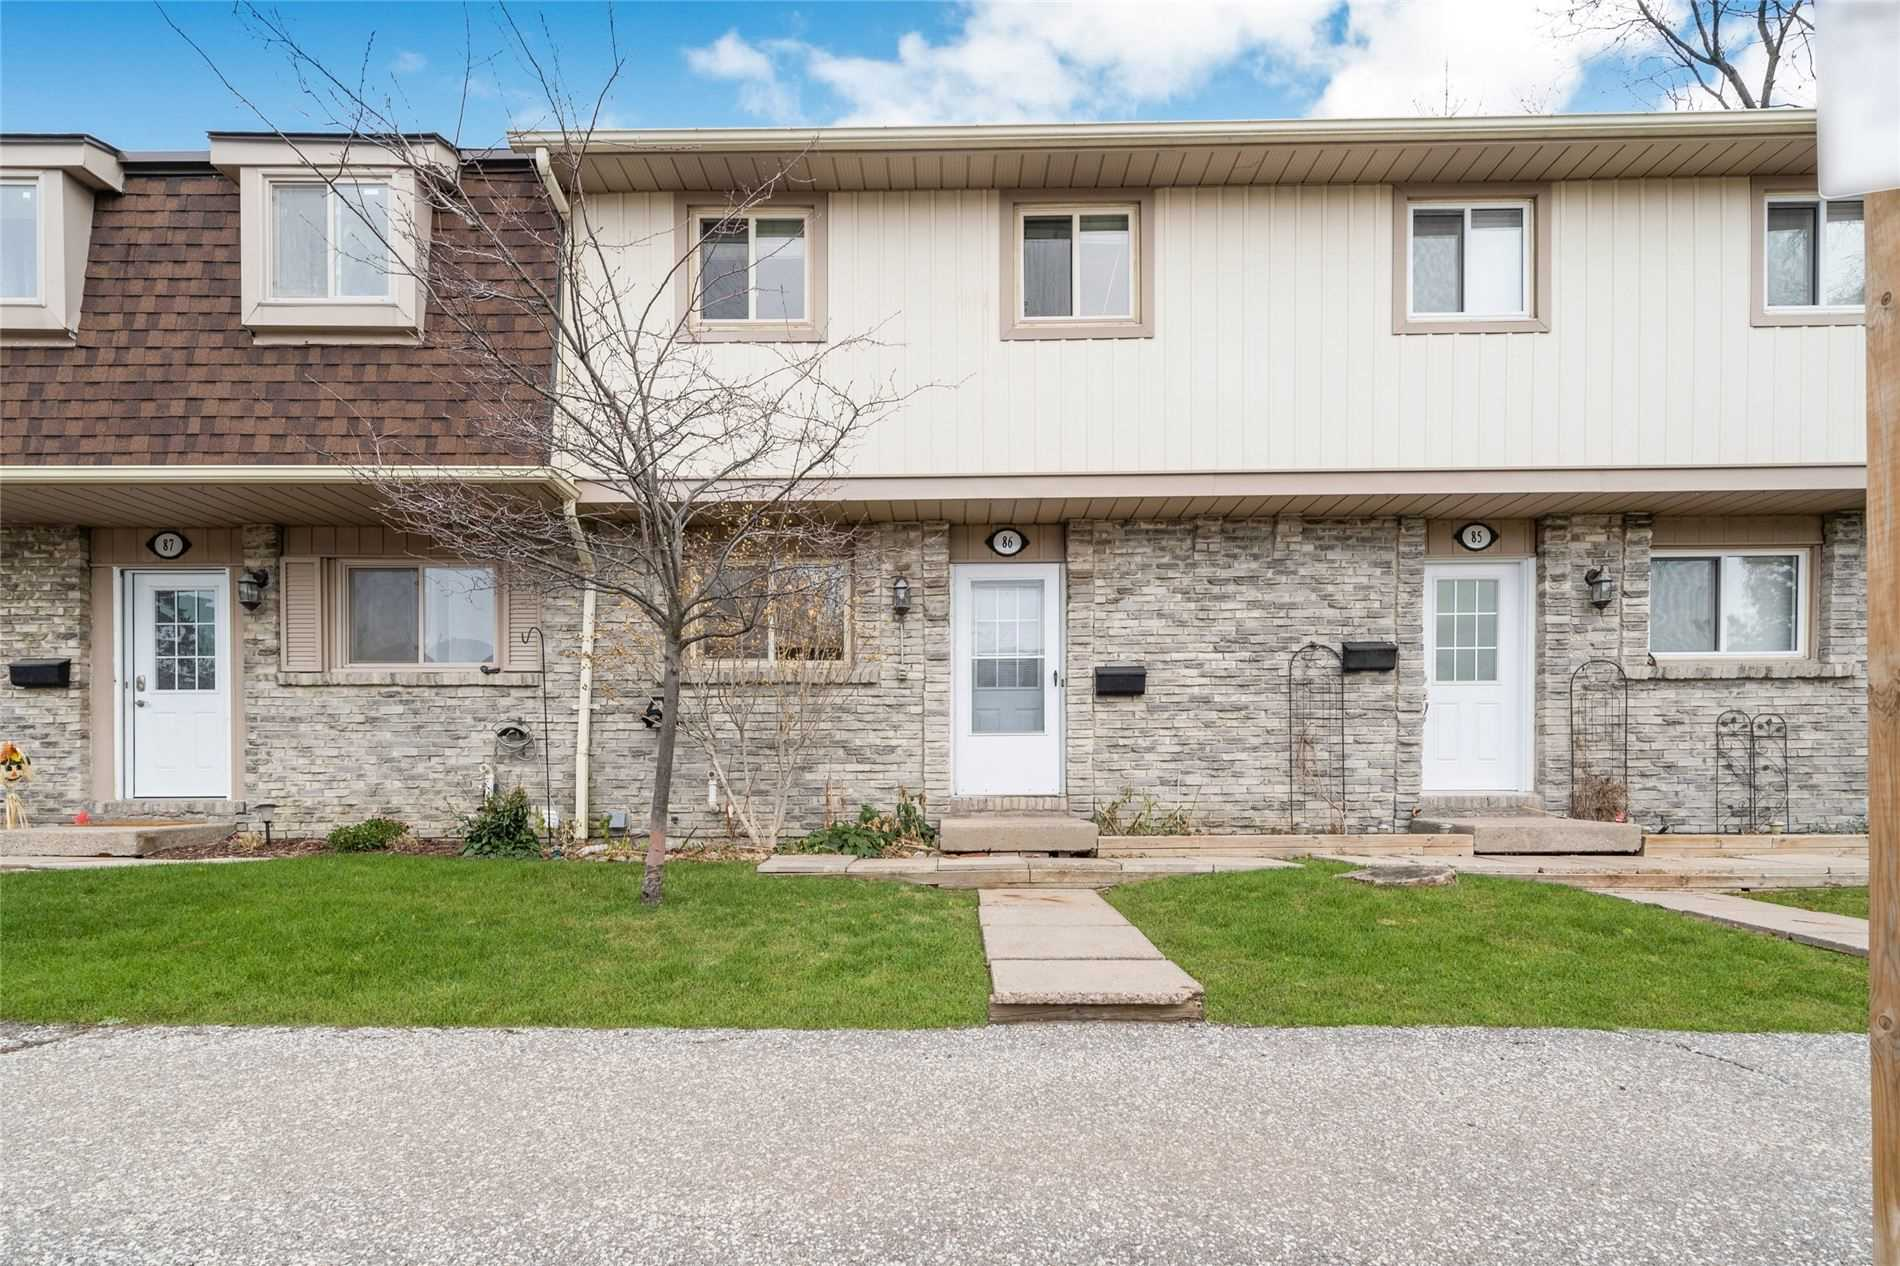 For Rent: 86 - 93 Hansen Road, Brampton, ON | 3 Bed, 2 Bath Townhouse for $2100.00. See 24 photos!